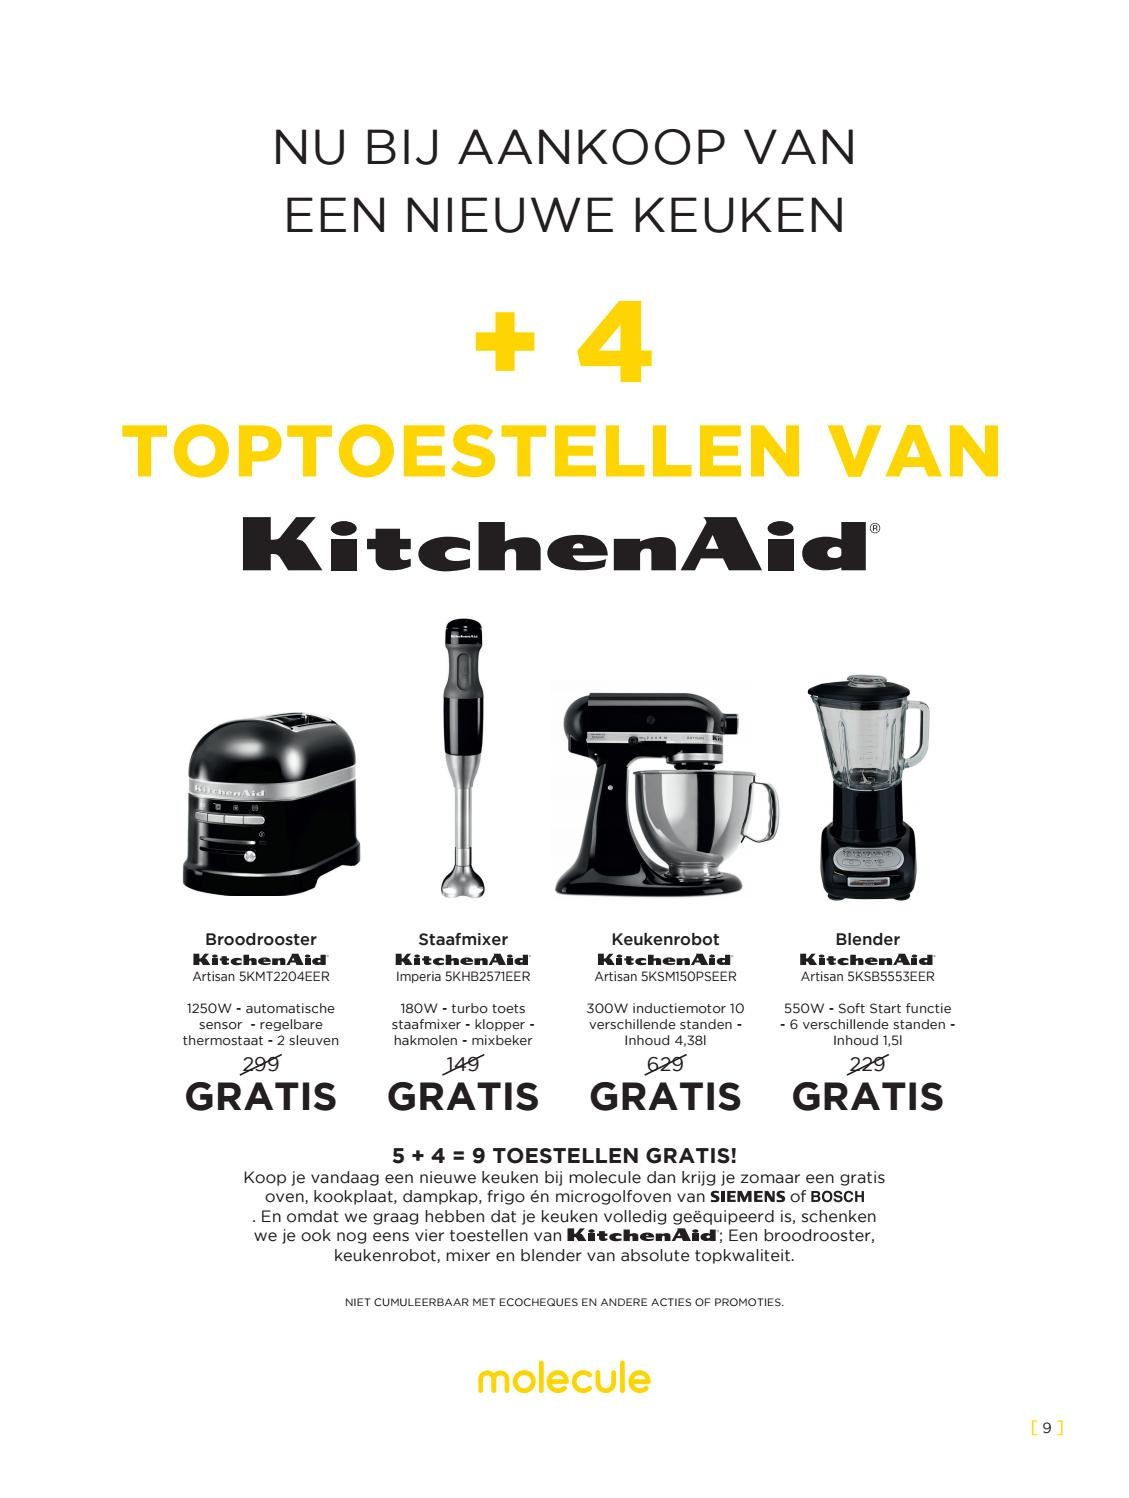 Hakapparaat Keuken Folder Molecule September 2016